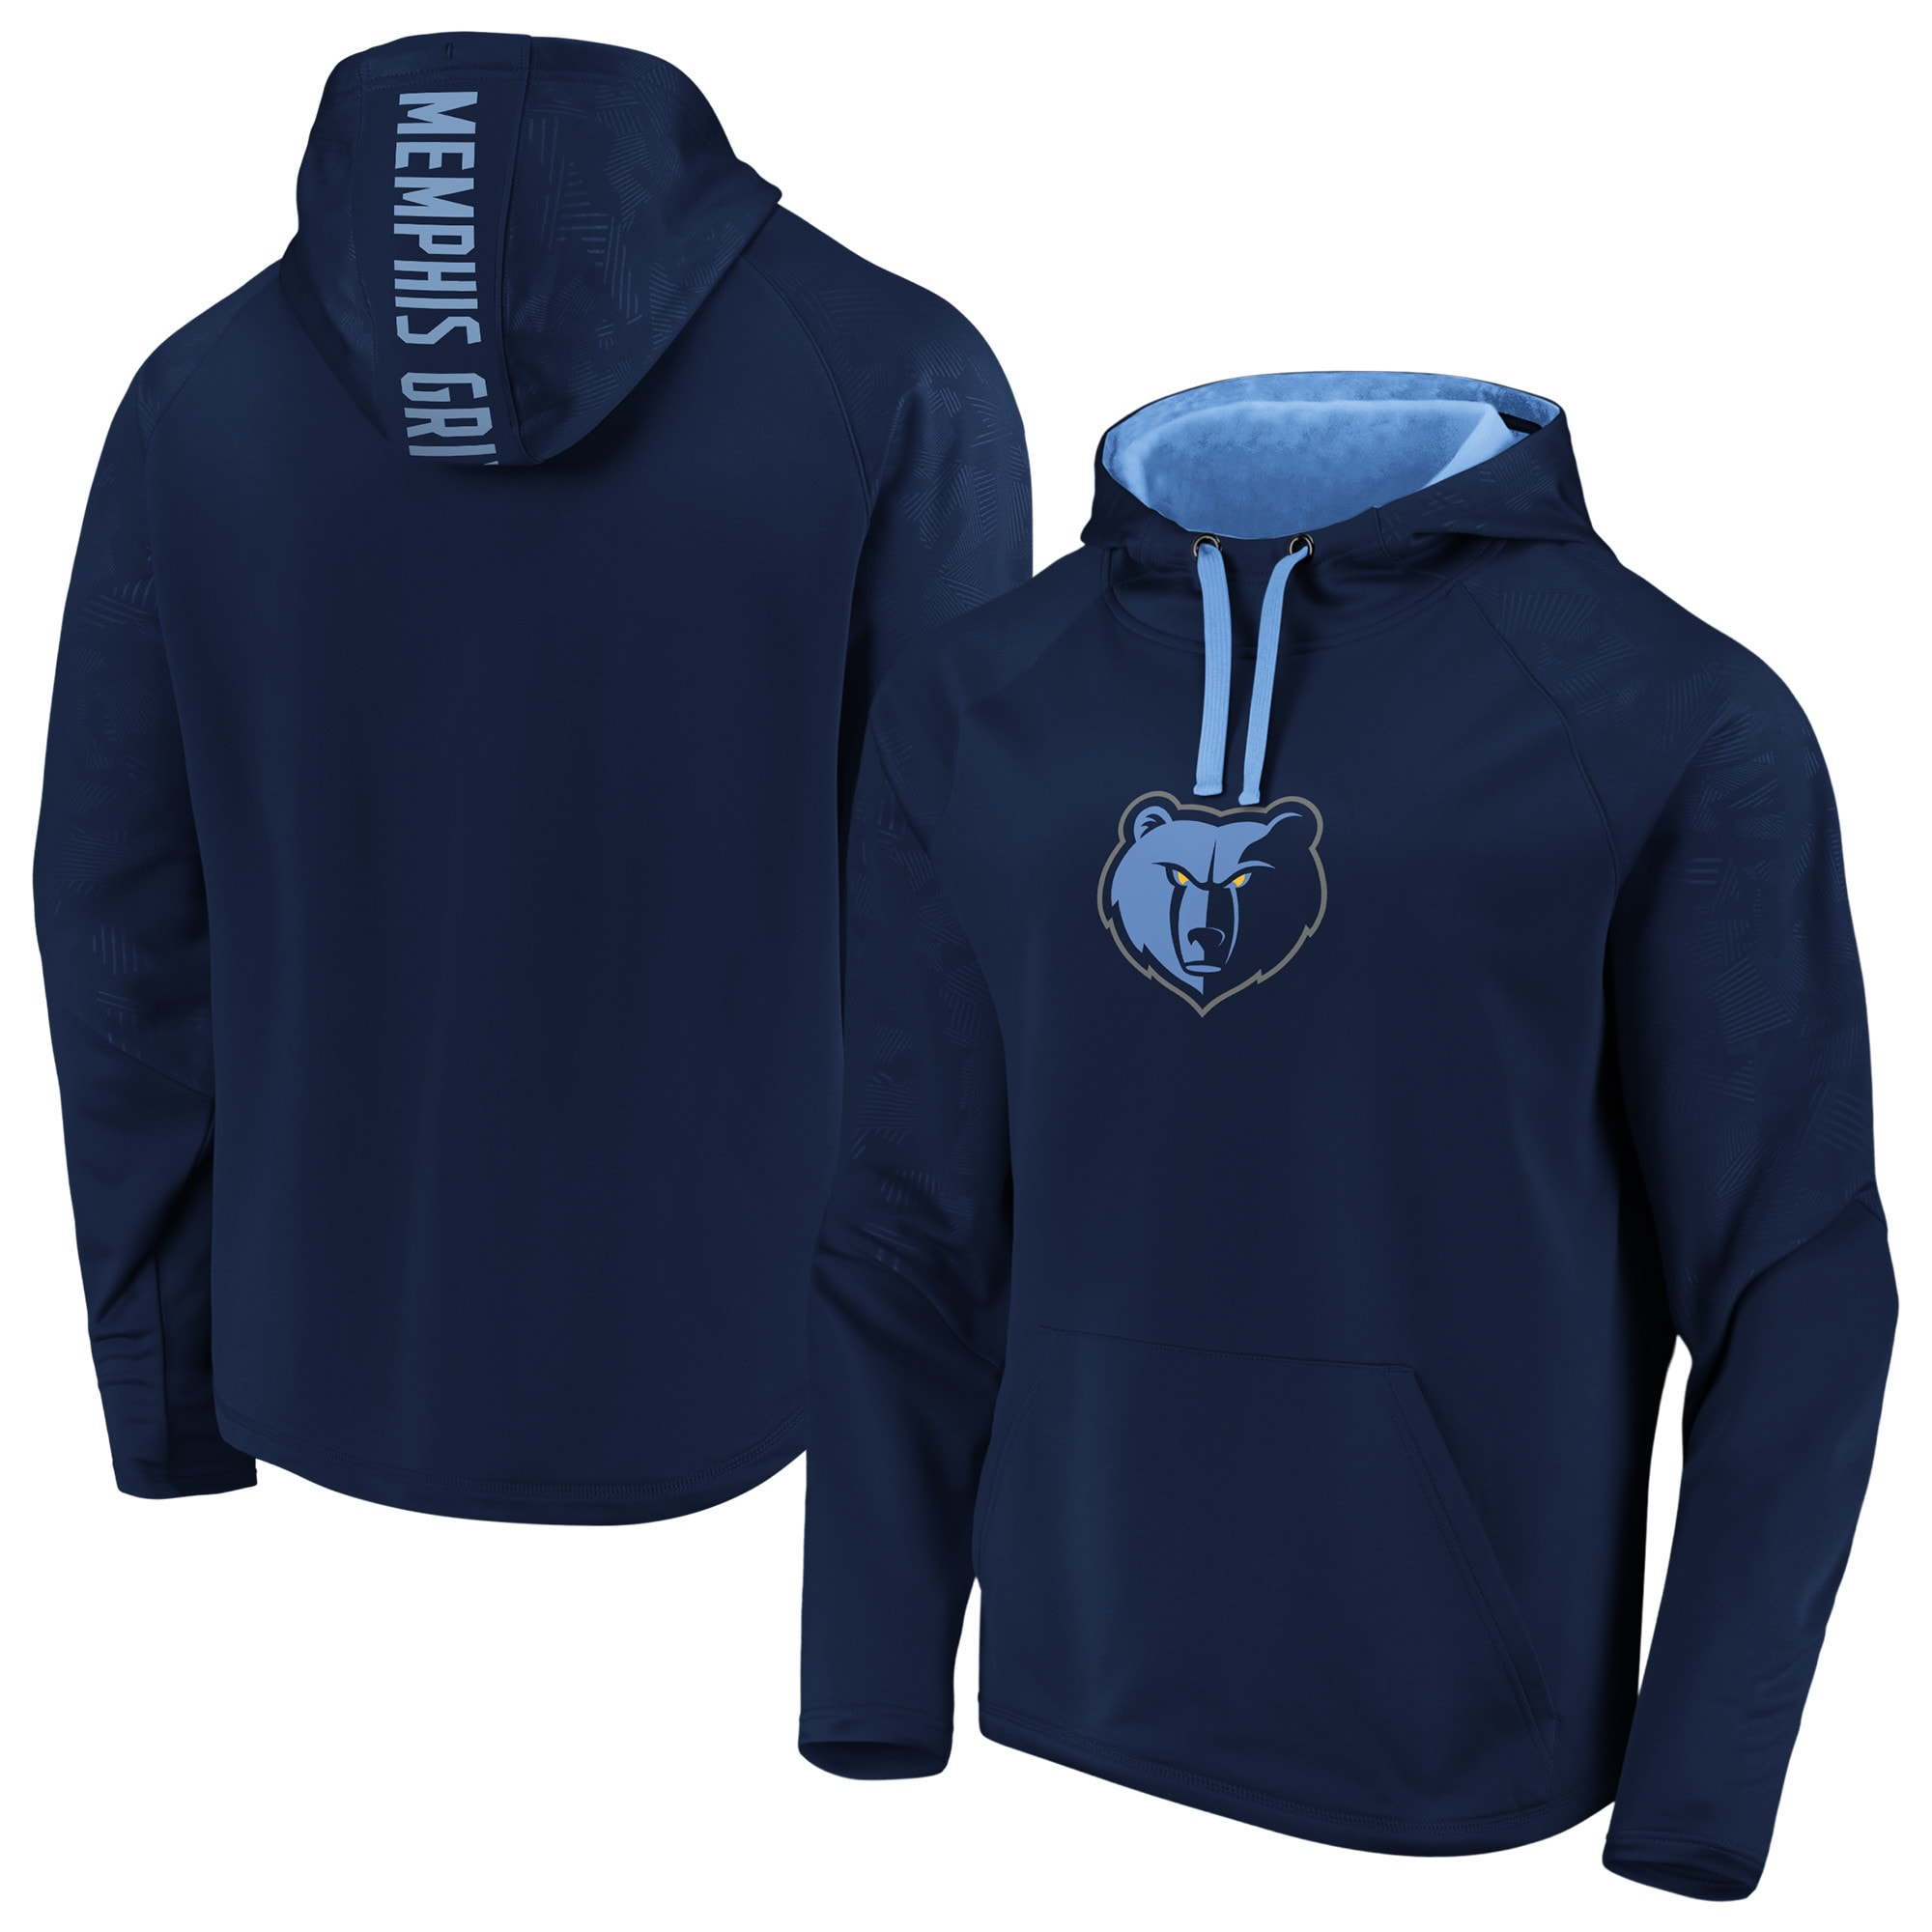 Memphis Grizzlies Fanatics Branded Iconic Defender Performance Primary Logo Pullover Hoodie - Navy/Light Blue